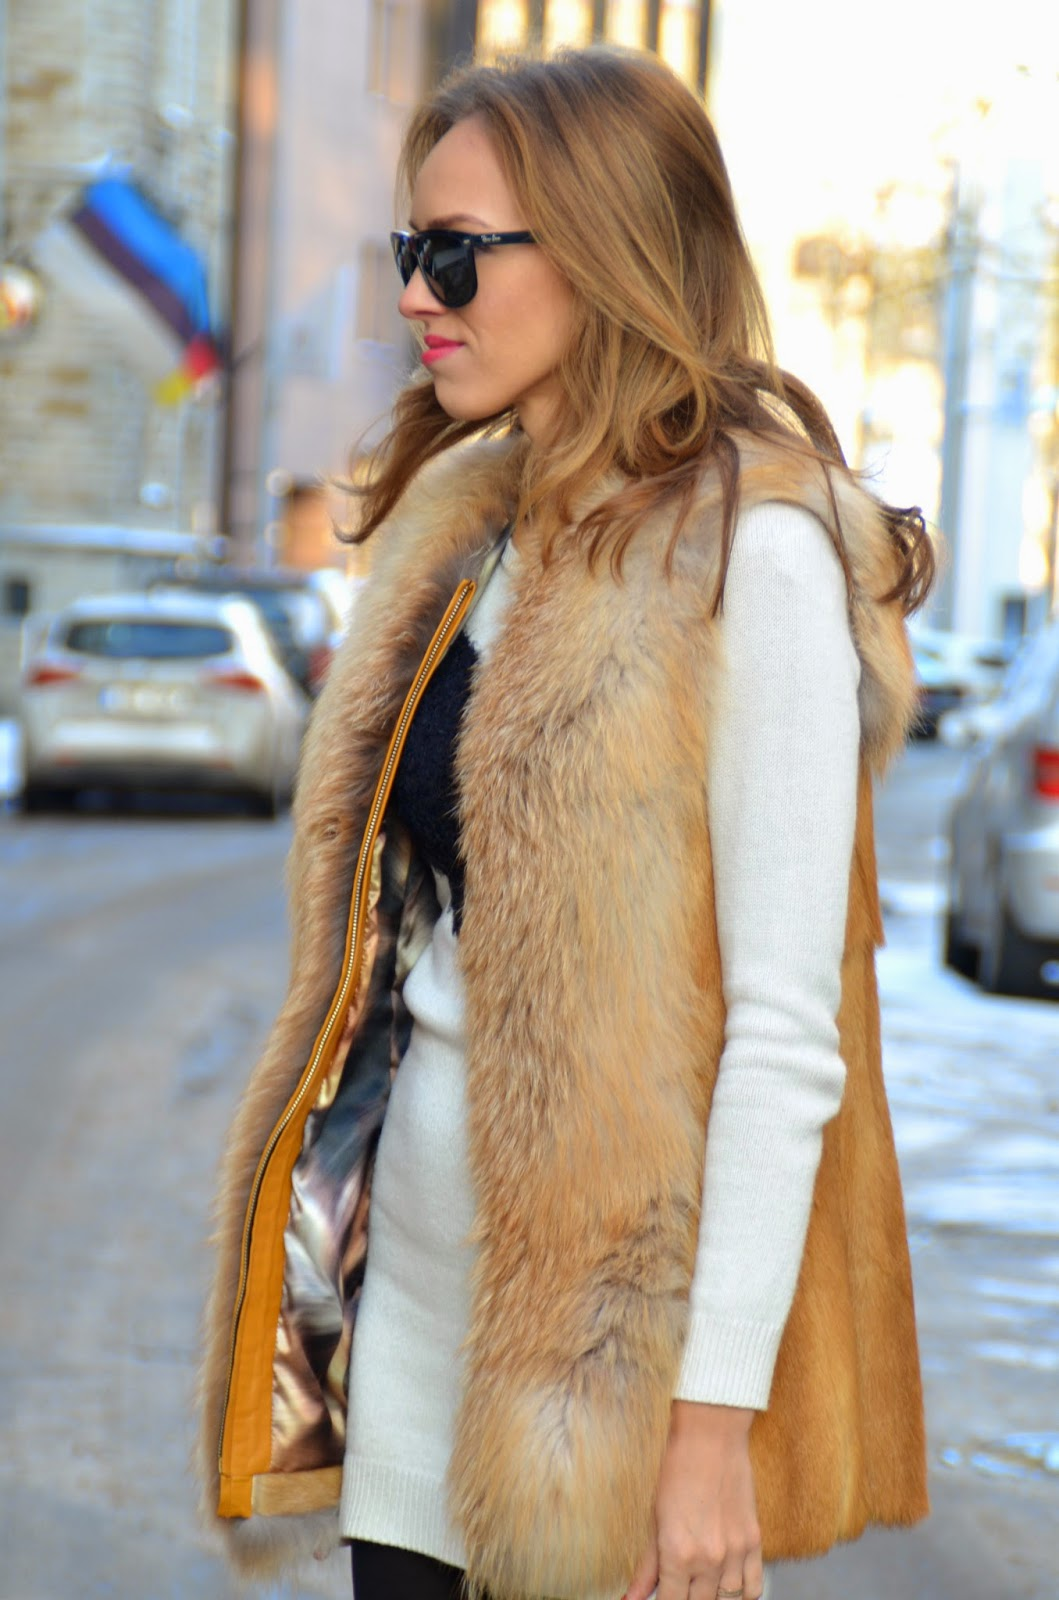 ray-ban-sunglasses-fox-fur-vest-winter-outfit kristjaana mere